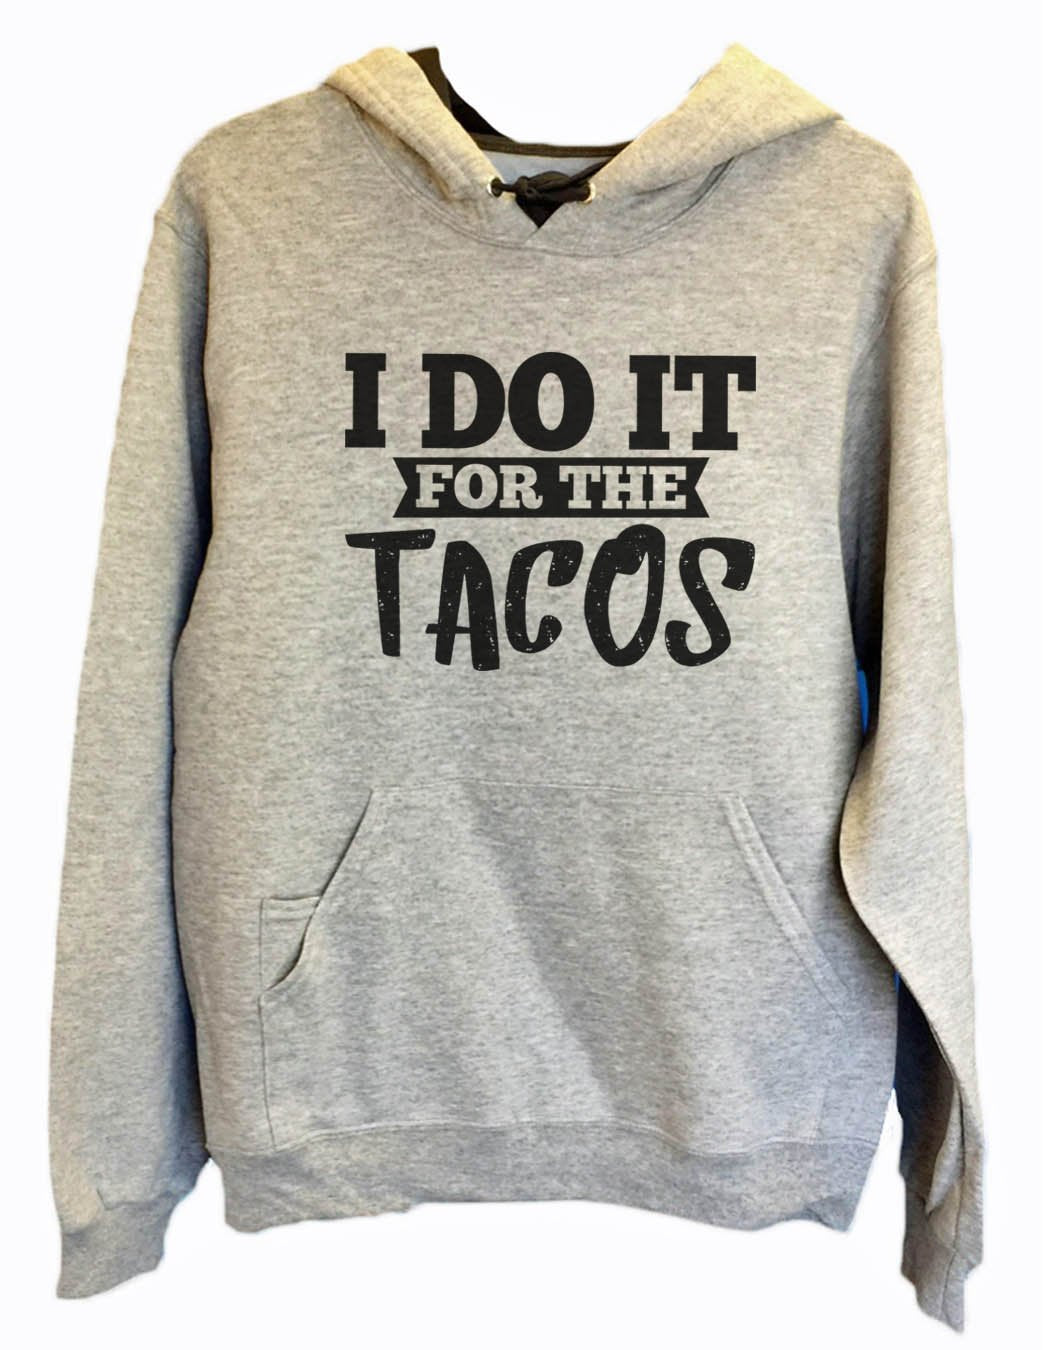 UNISEX HOODIE - I Do It For The Tacos - FUNNY MENS AND WOMENS HOODED SWEATSHIRTS - 2116 Funny Shirt